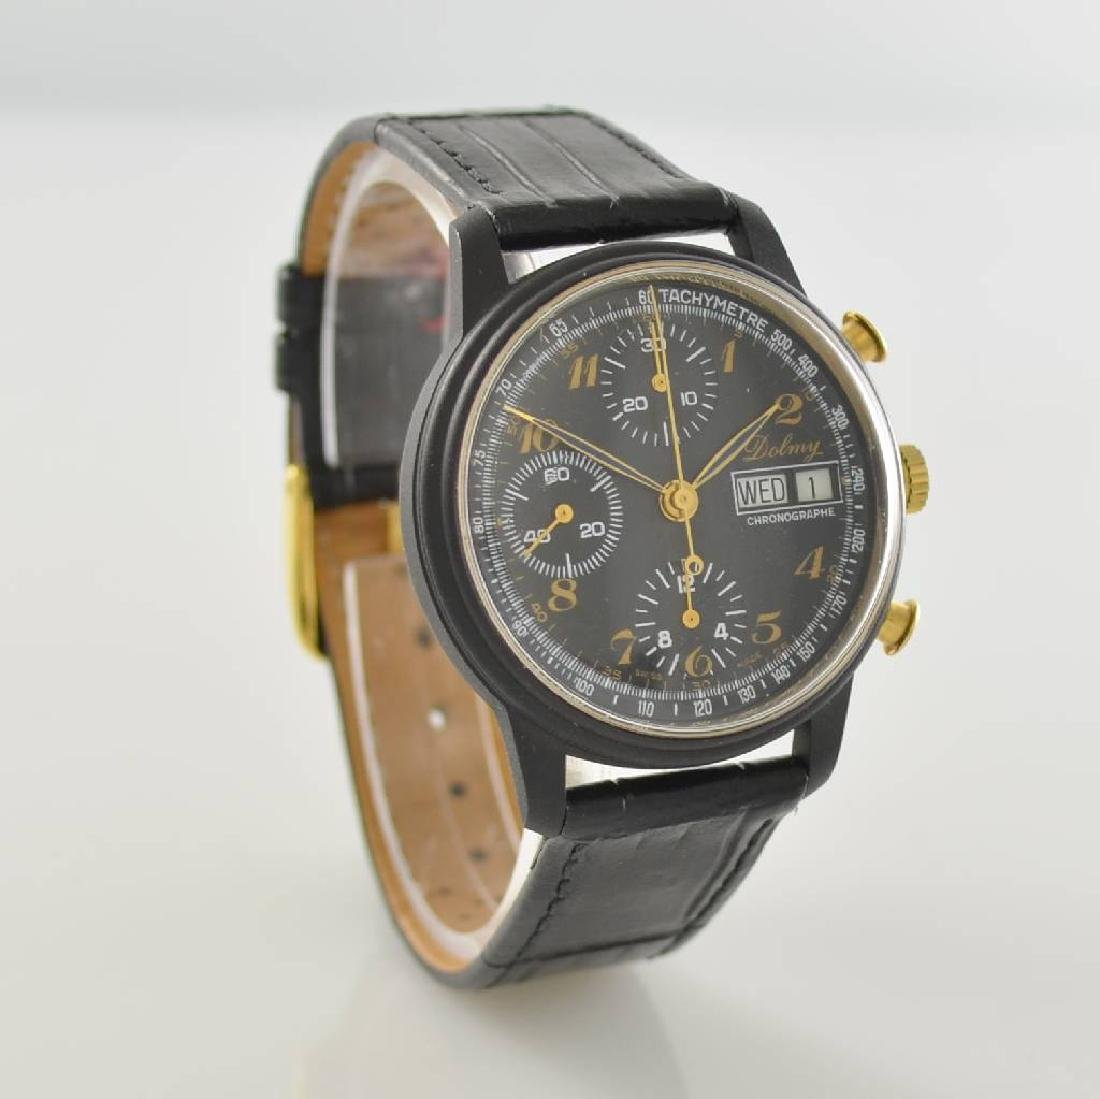 DOLMY manual wound chronograph - 5